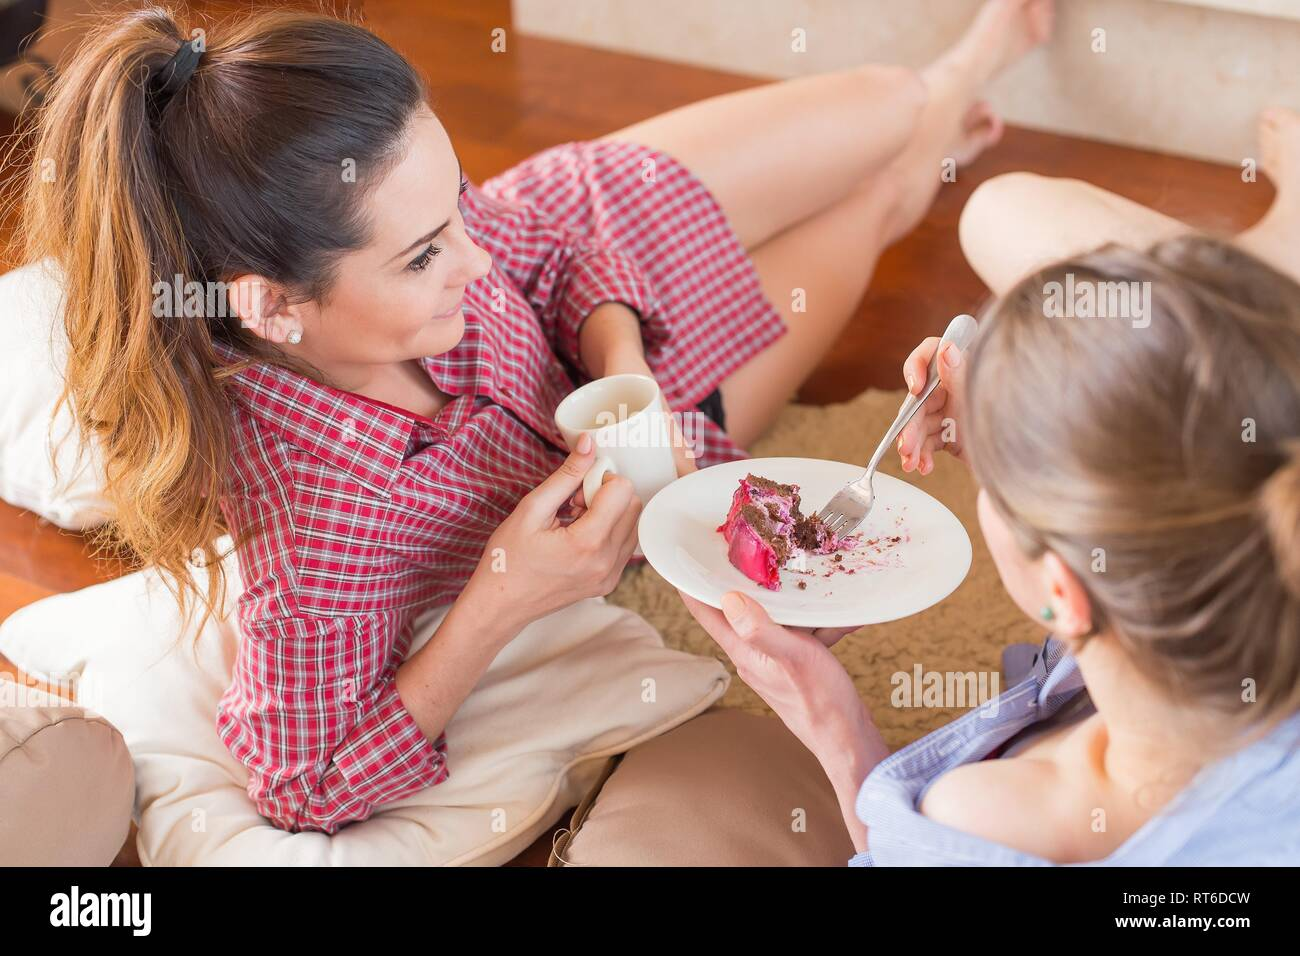 Women chitchatting with best friend at home near a tea. - Stock Image